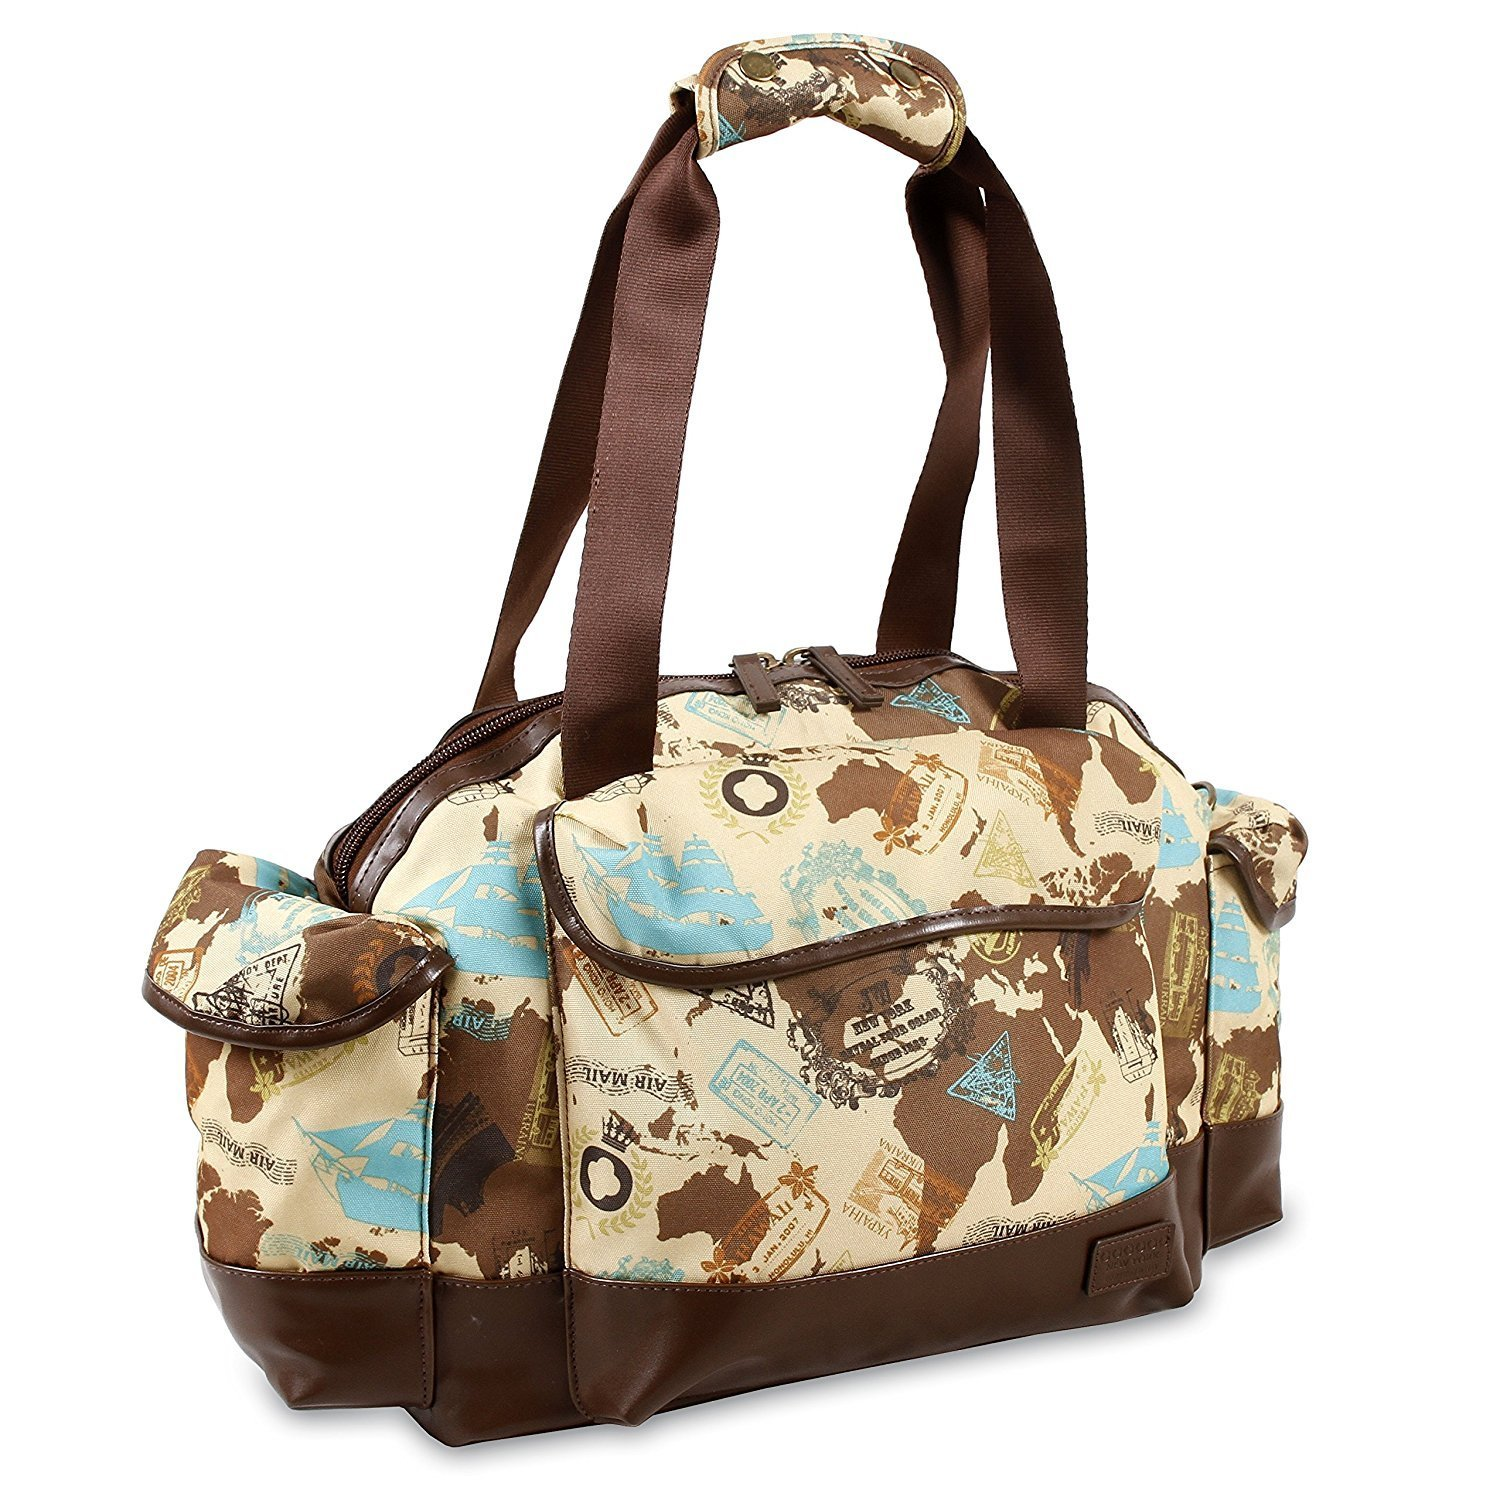 Girls Brown World Map Themed Carry Duffle Bag, Lightweight, Pirates ships Duffel, Handle, Postal Marks, Shoulder Strap Duffel, Kids Travel Luggage, Sleepover, Fashionable